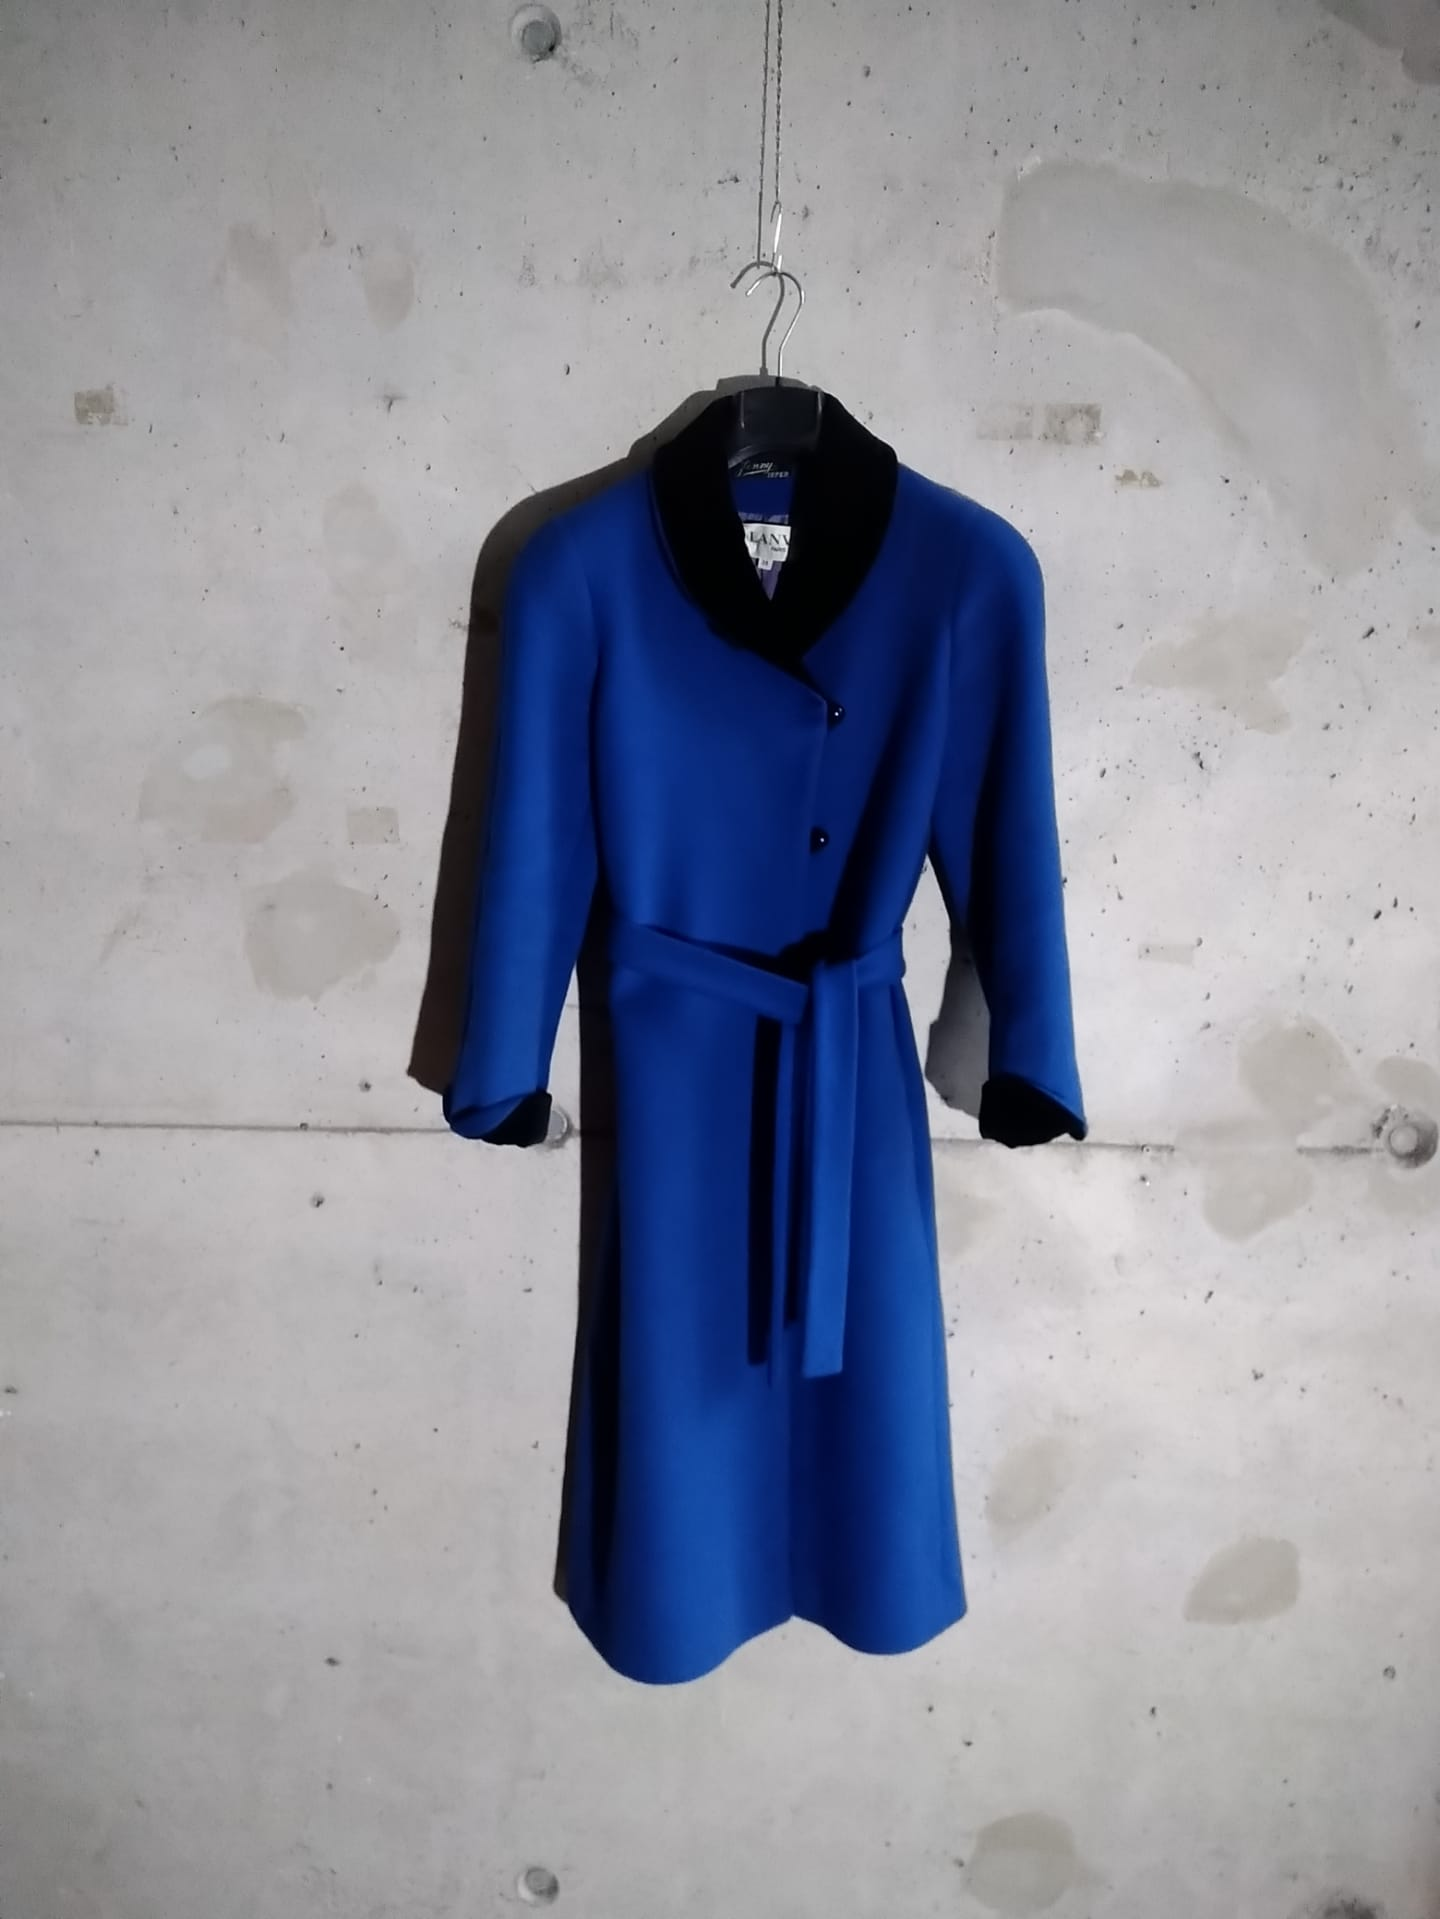 Lanvin blue coat with black velvet collar